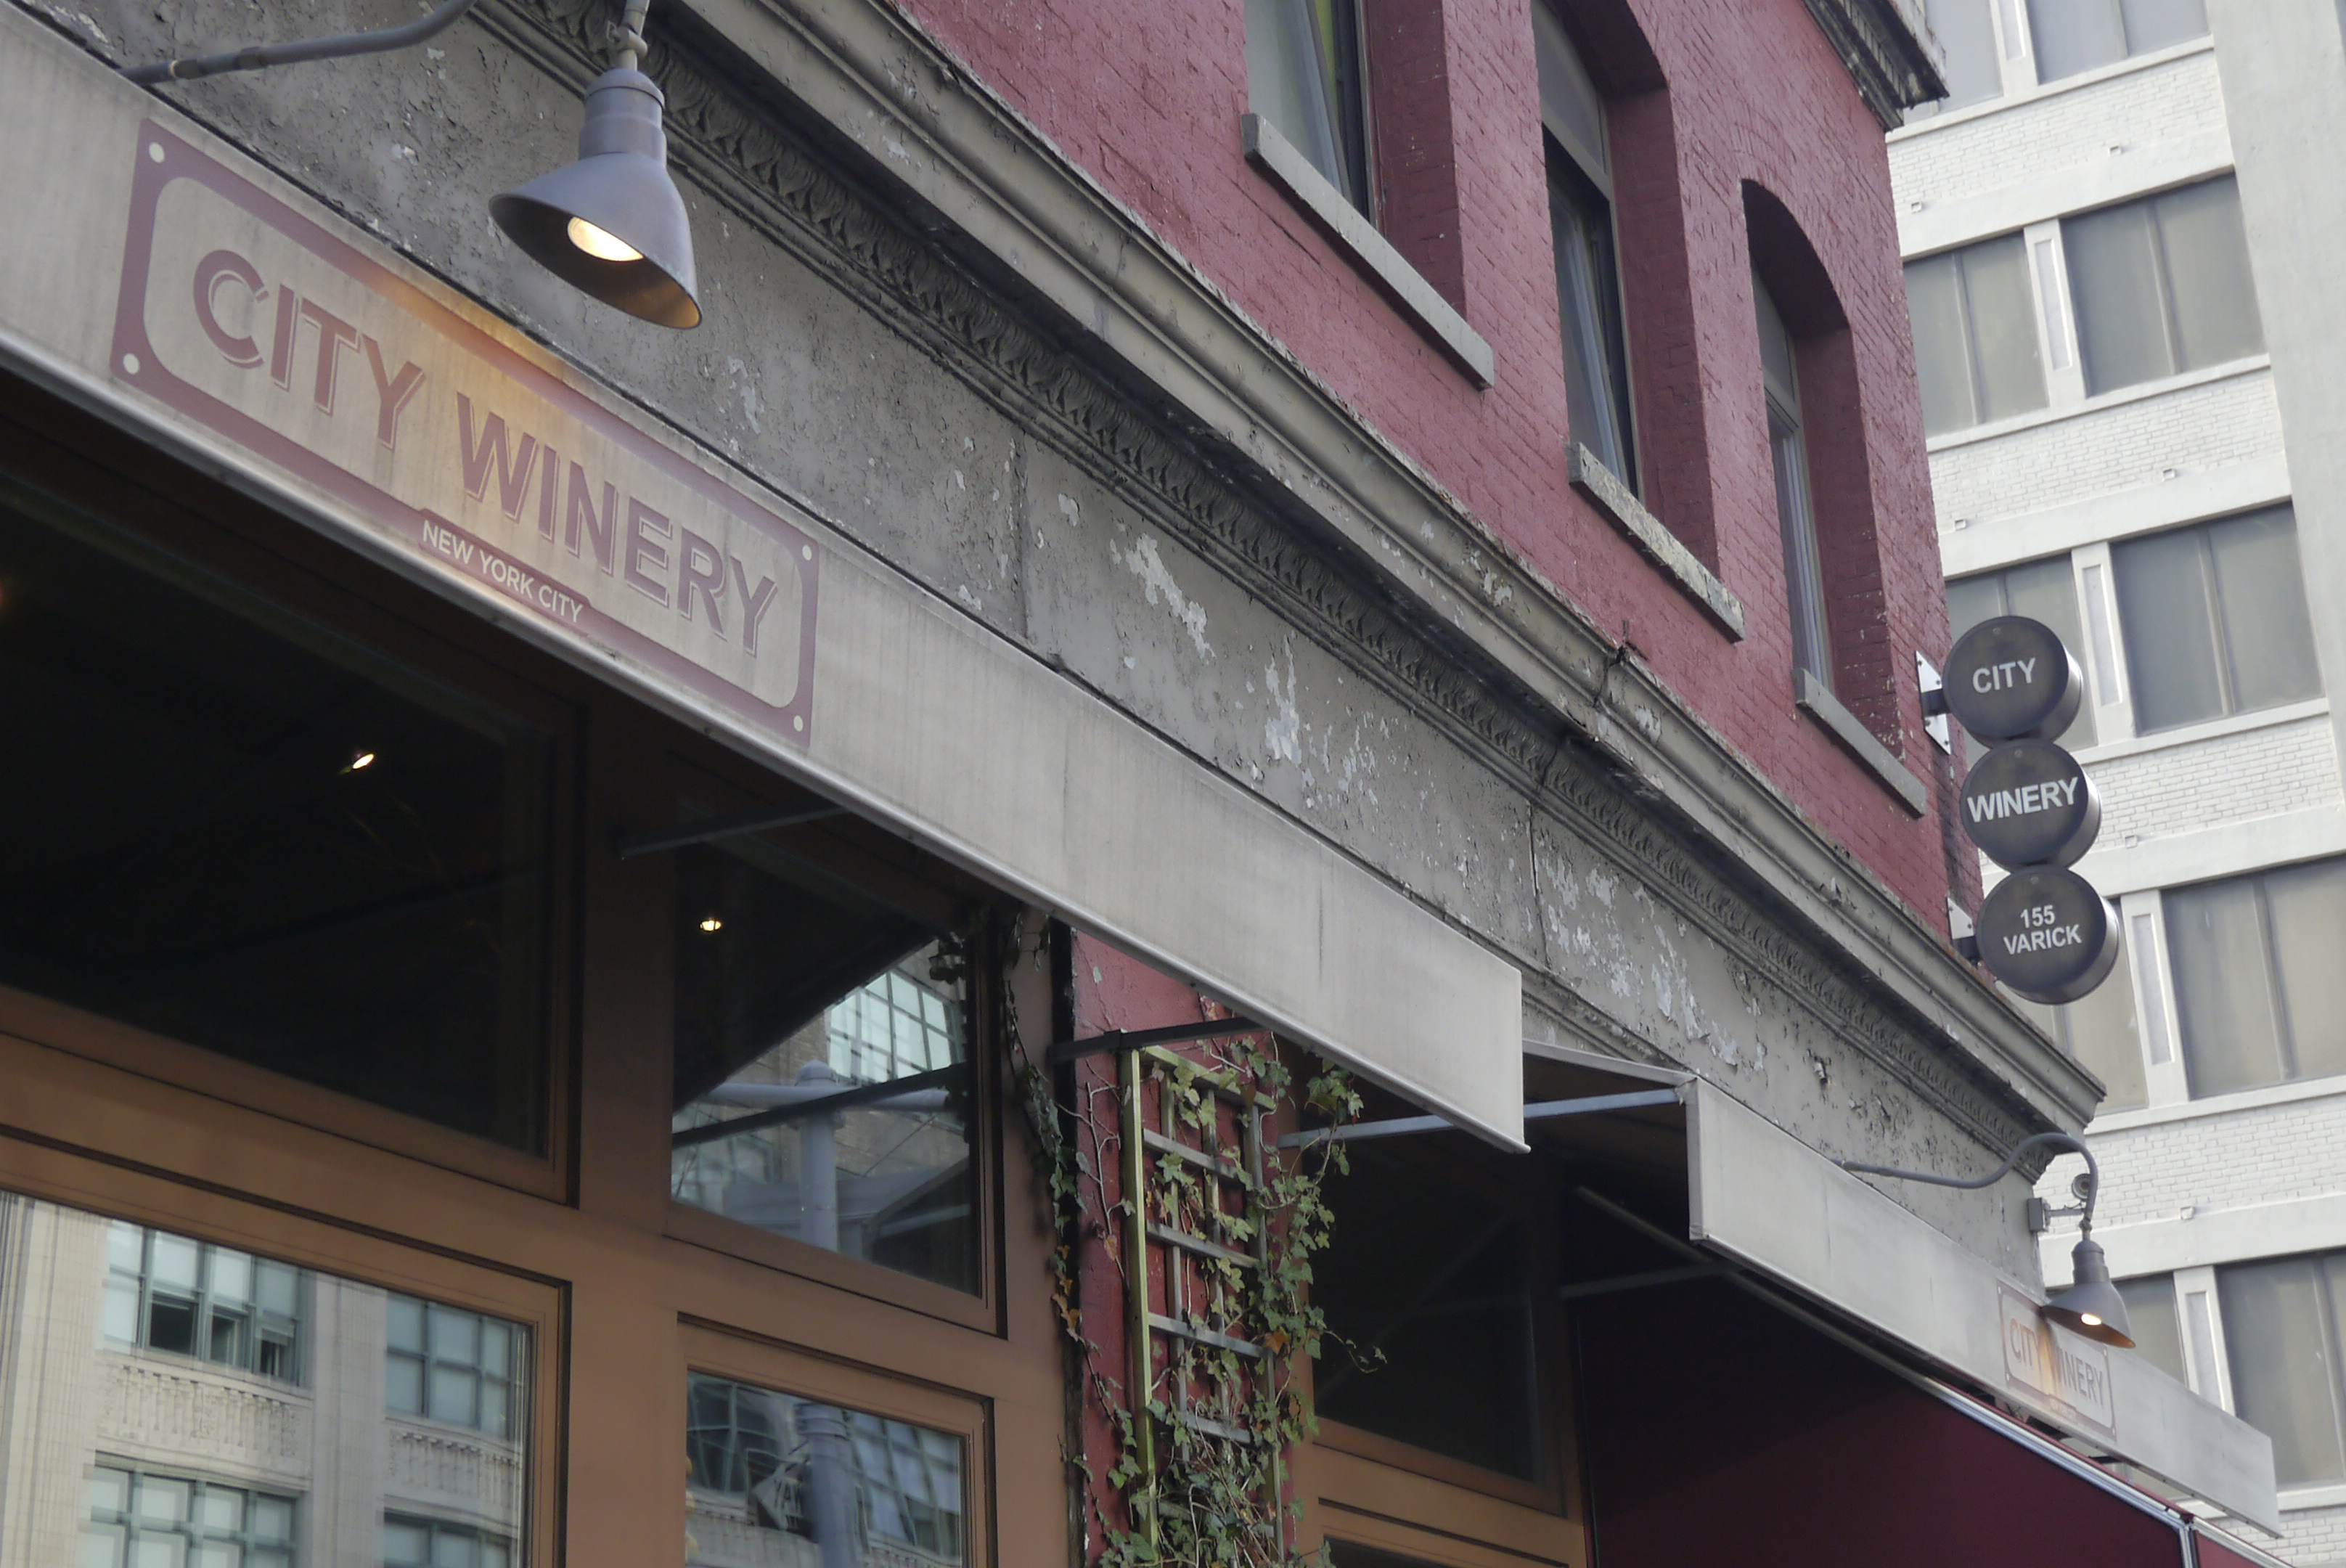 City Winery front